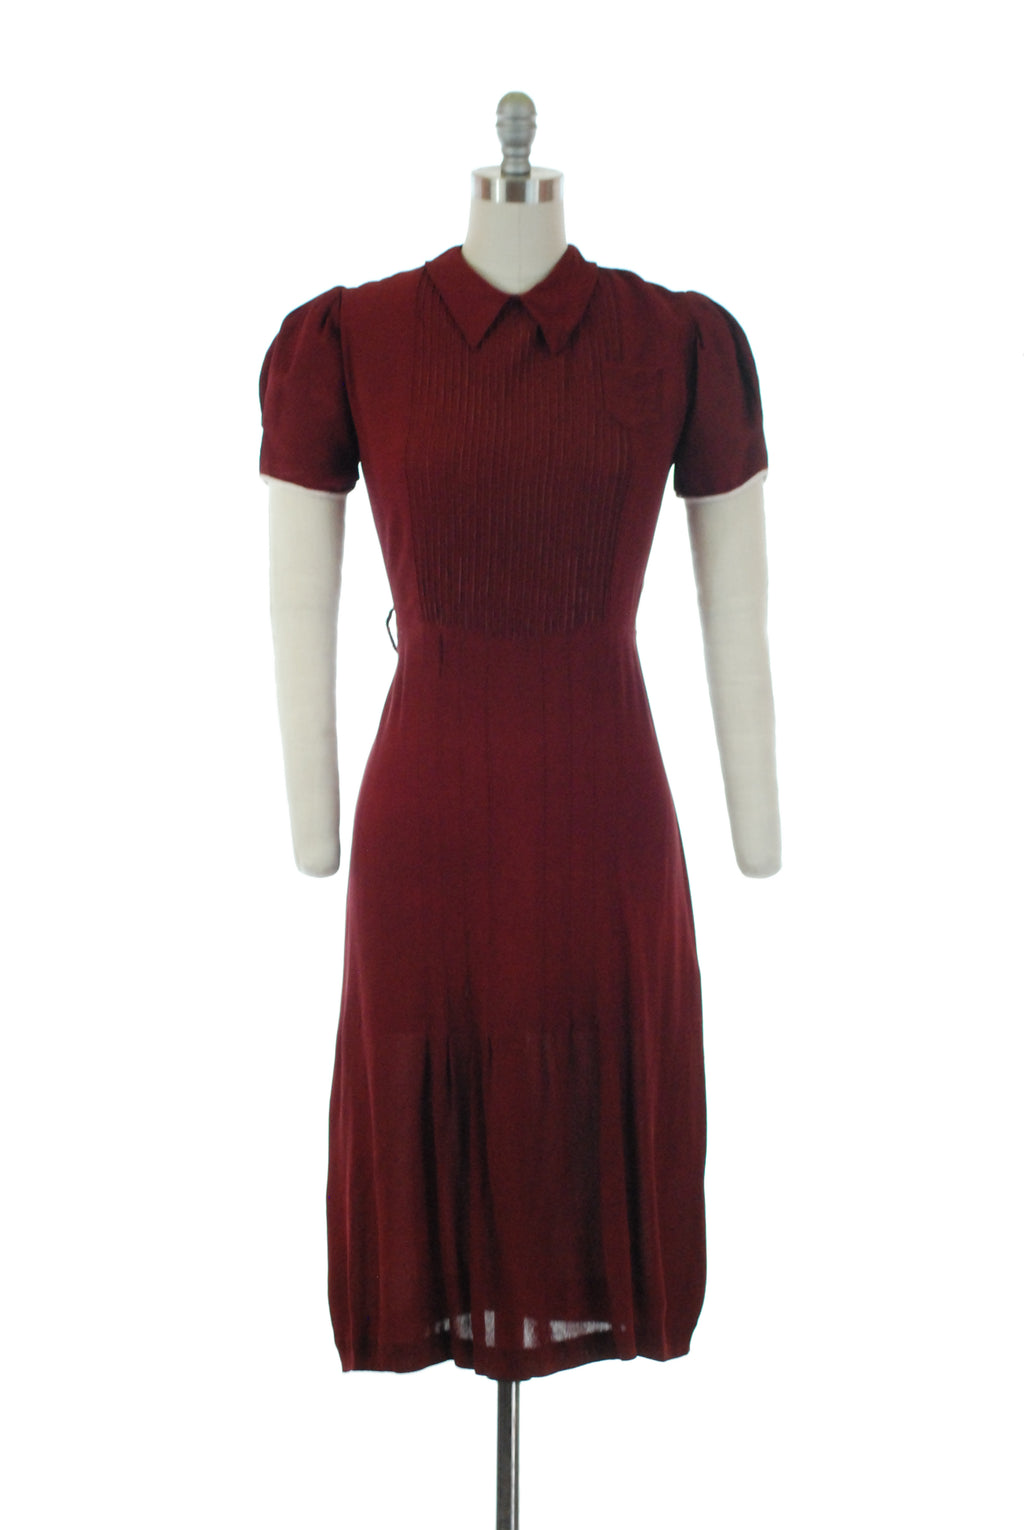 Charming 1930s Deep Merlot Dress with Puffed Sleeves